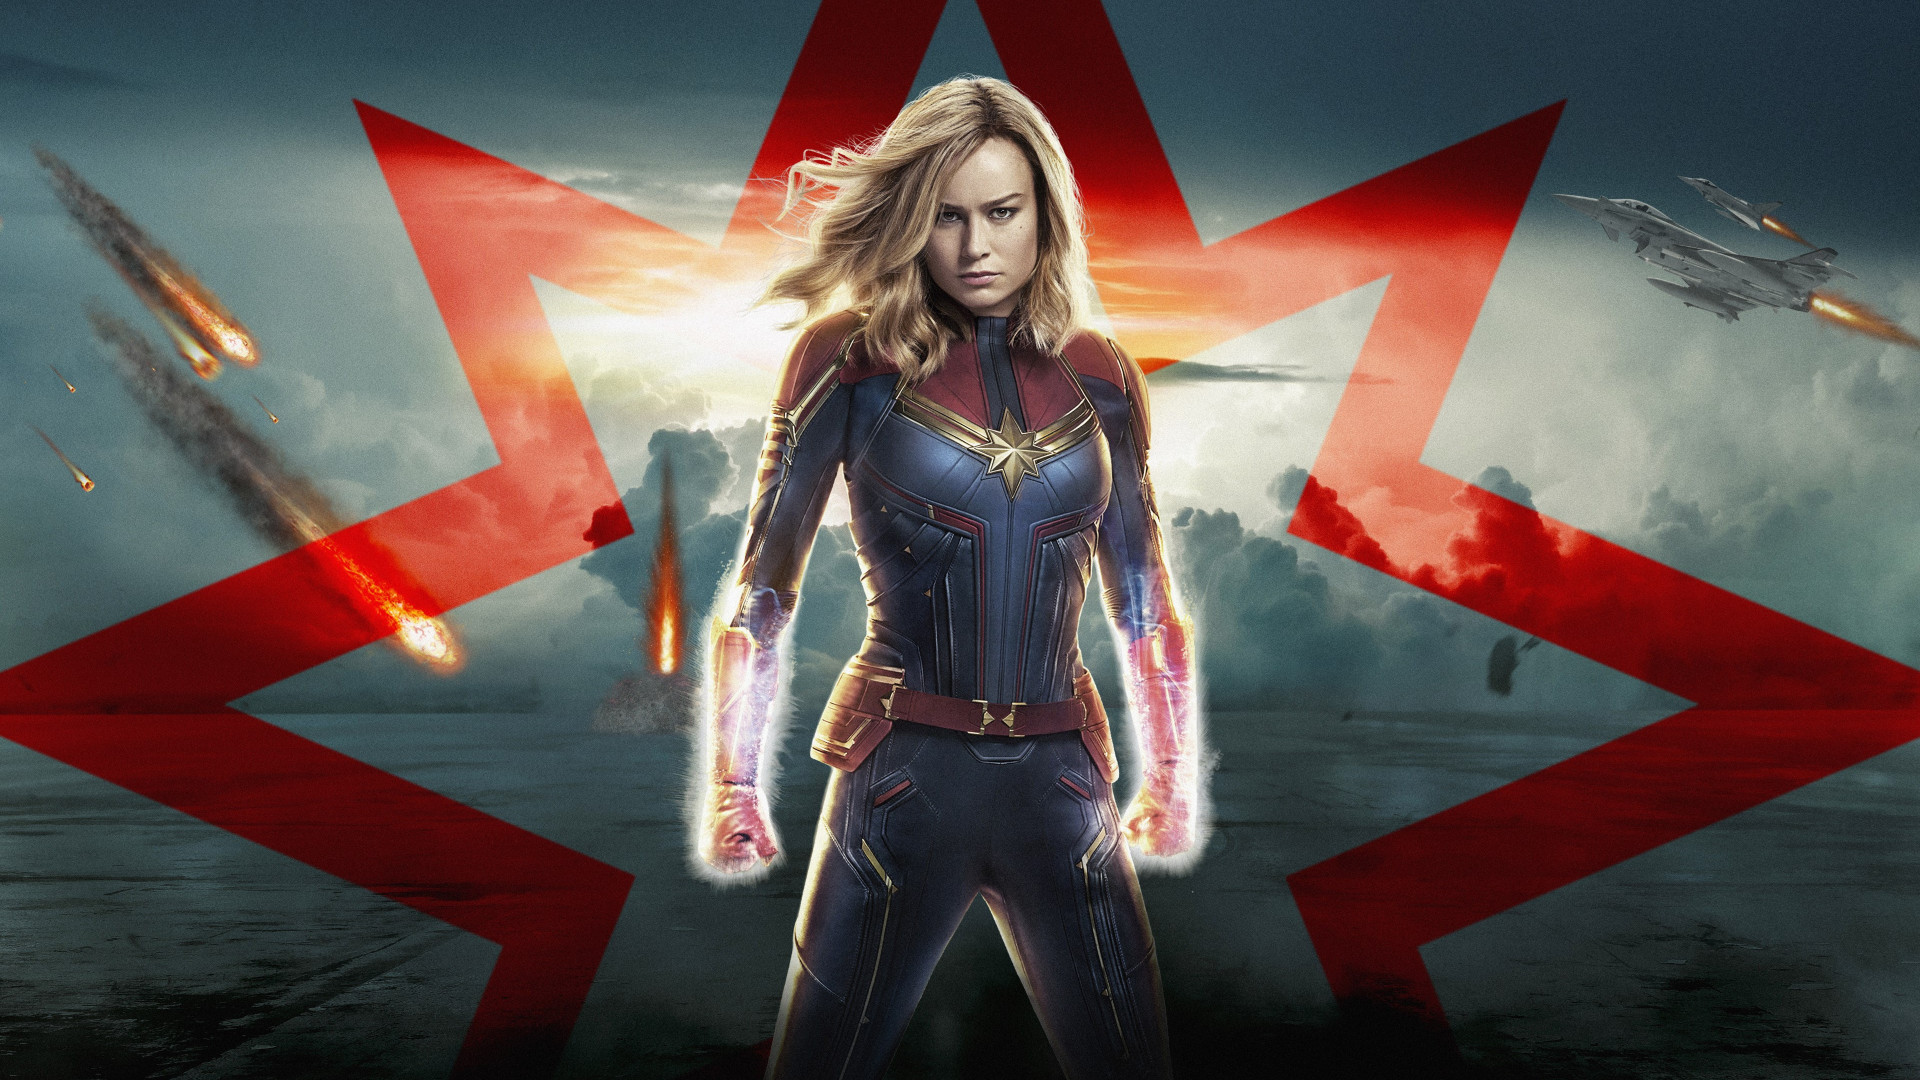 Captain Marvel poster wallpaper 1920x1080